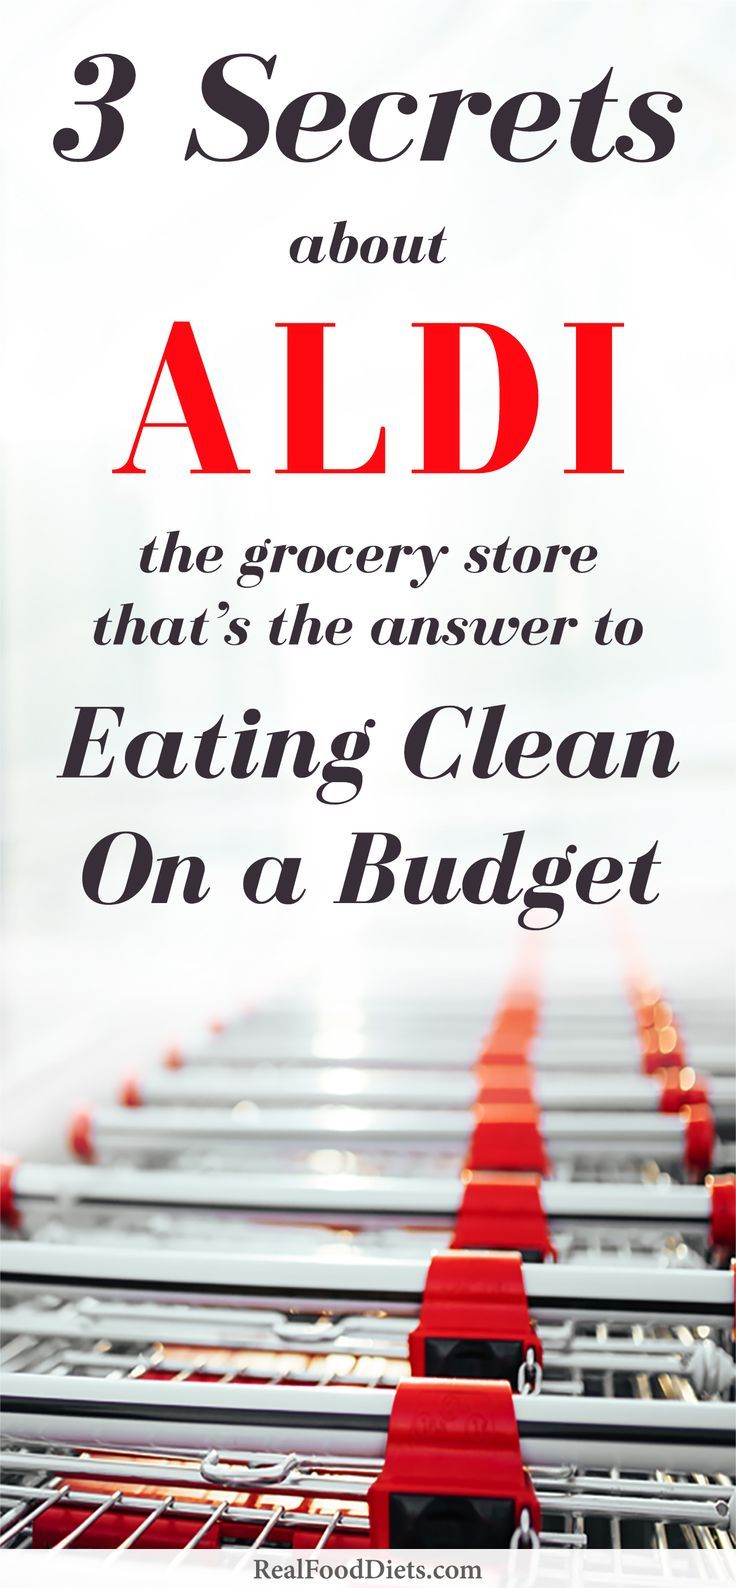 Making your meal plan? Be sure to plan a shopping trip to ALDI, the grocery store that's the answer to clean eating on a budget. Don't know what to buy at ALDI? They carry gluten-free, organic, and paleo diet friendly options. Click to read all of @Bacons on a Budget's ALDI secrets and the trick to eating healthy on a budget on @realfooddiet